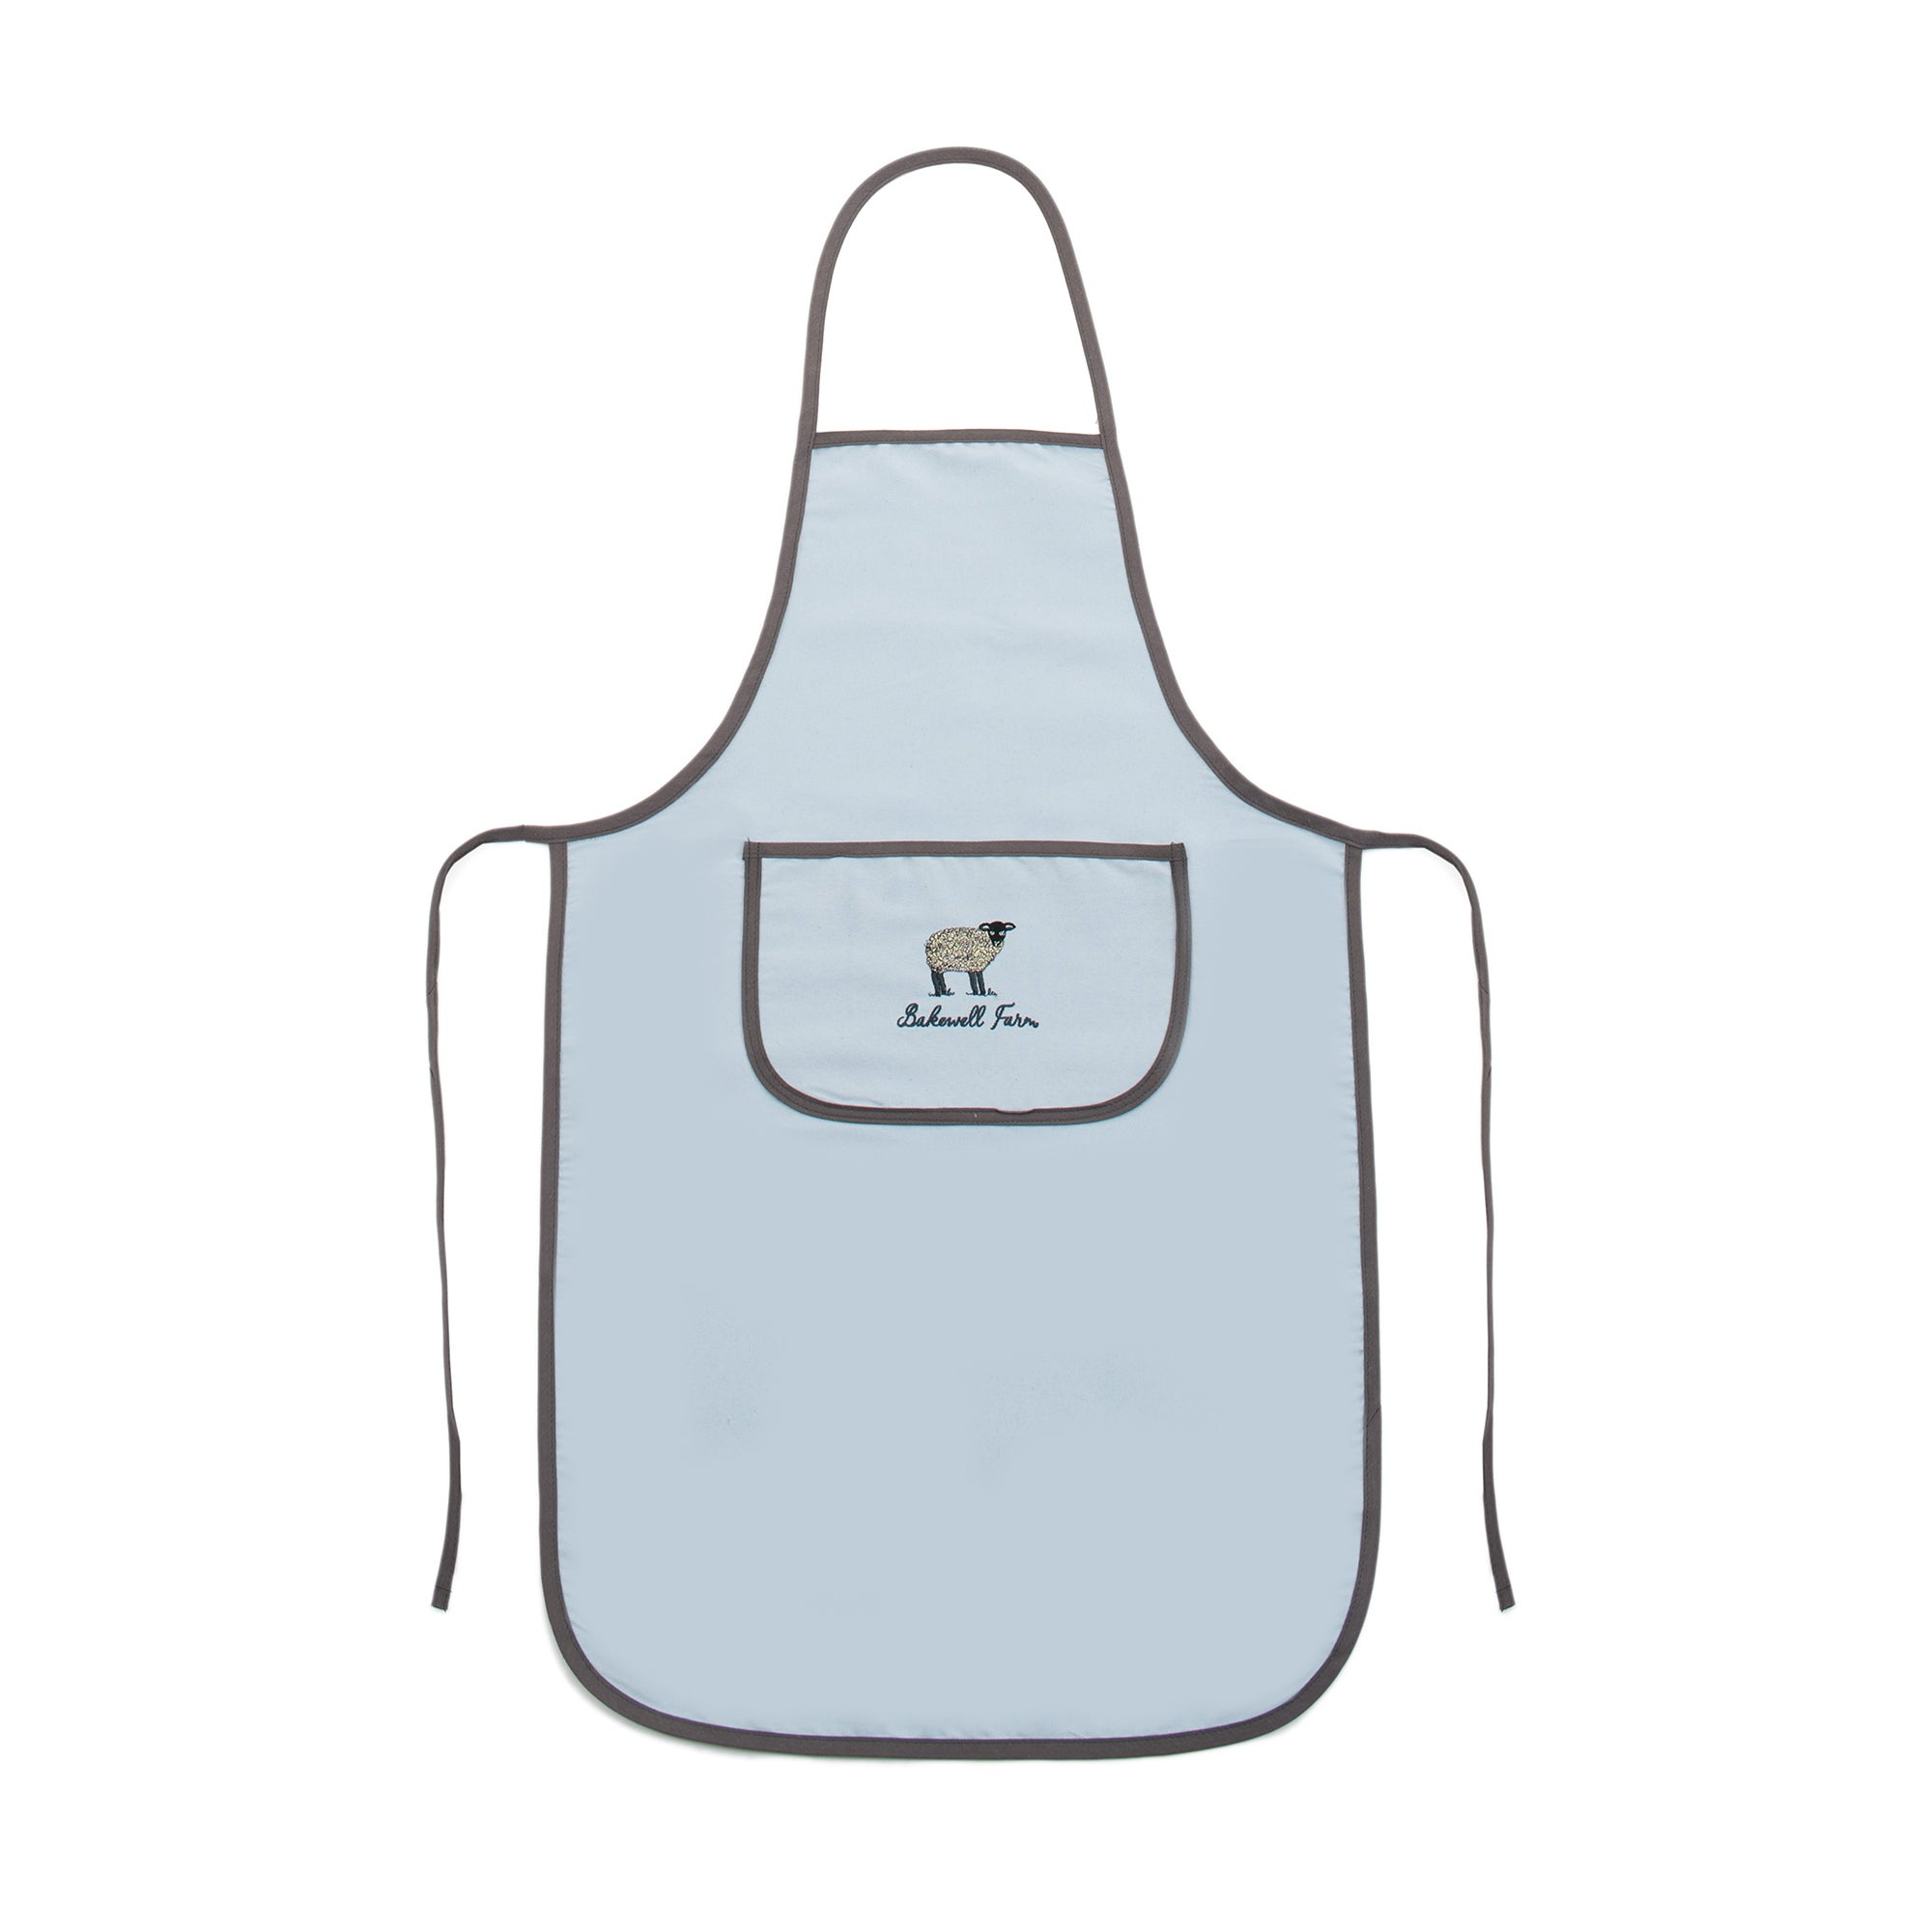 Bakewell Farm Collection Apron